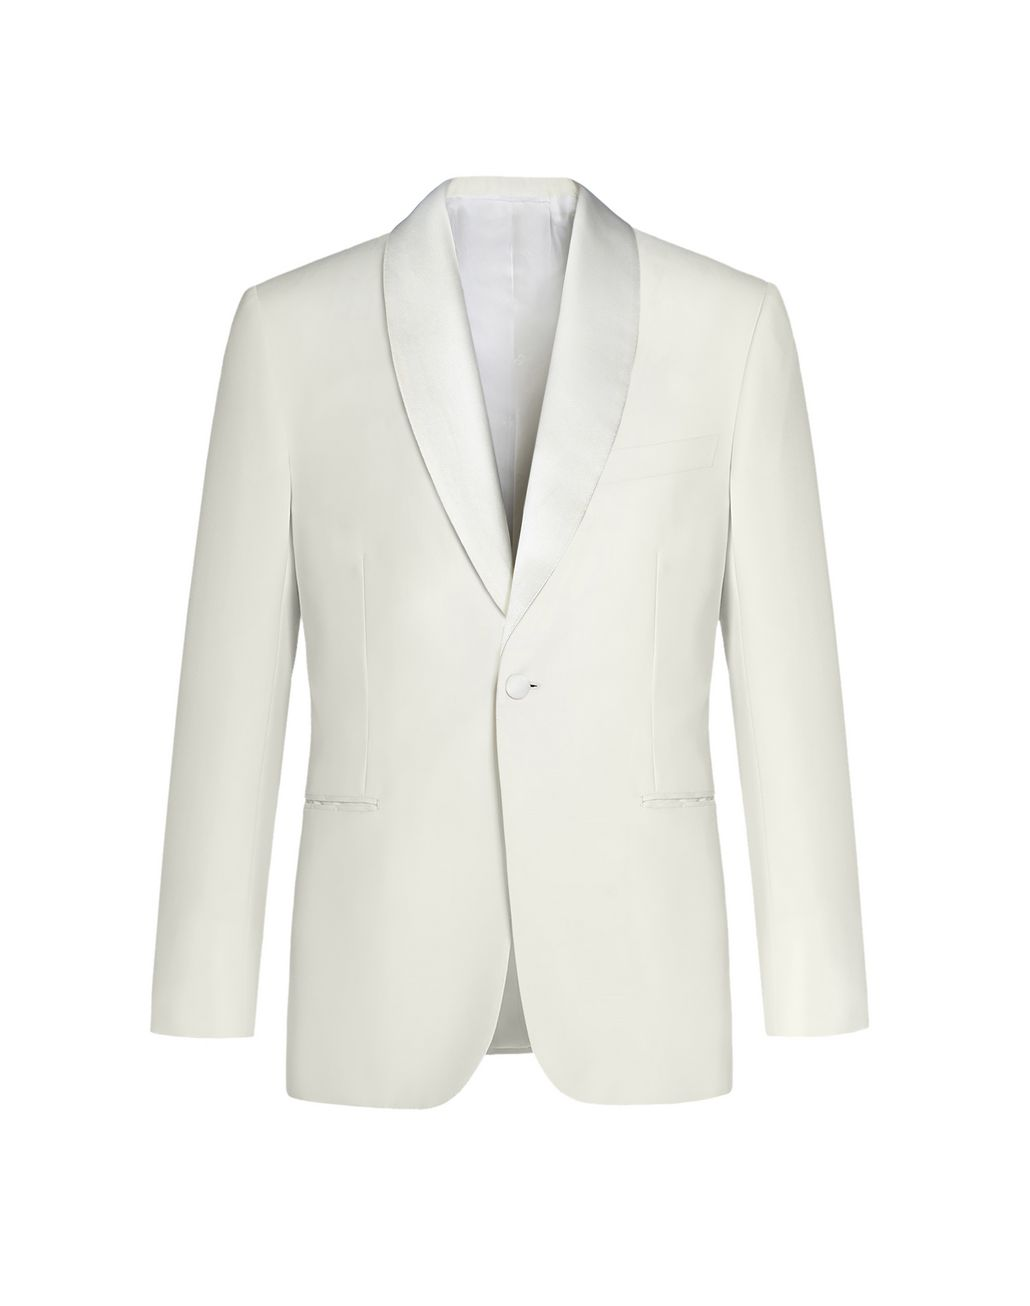 BRIONI Veste Smoking Continental Smoking Homme f